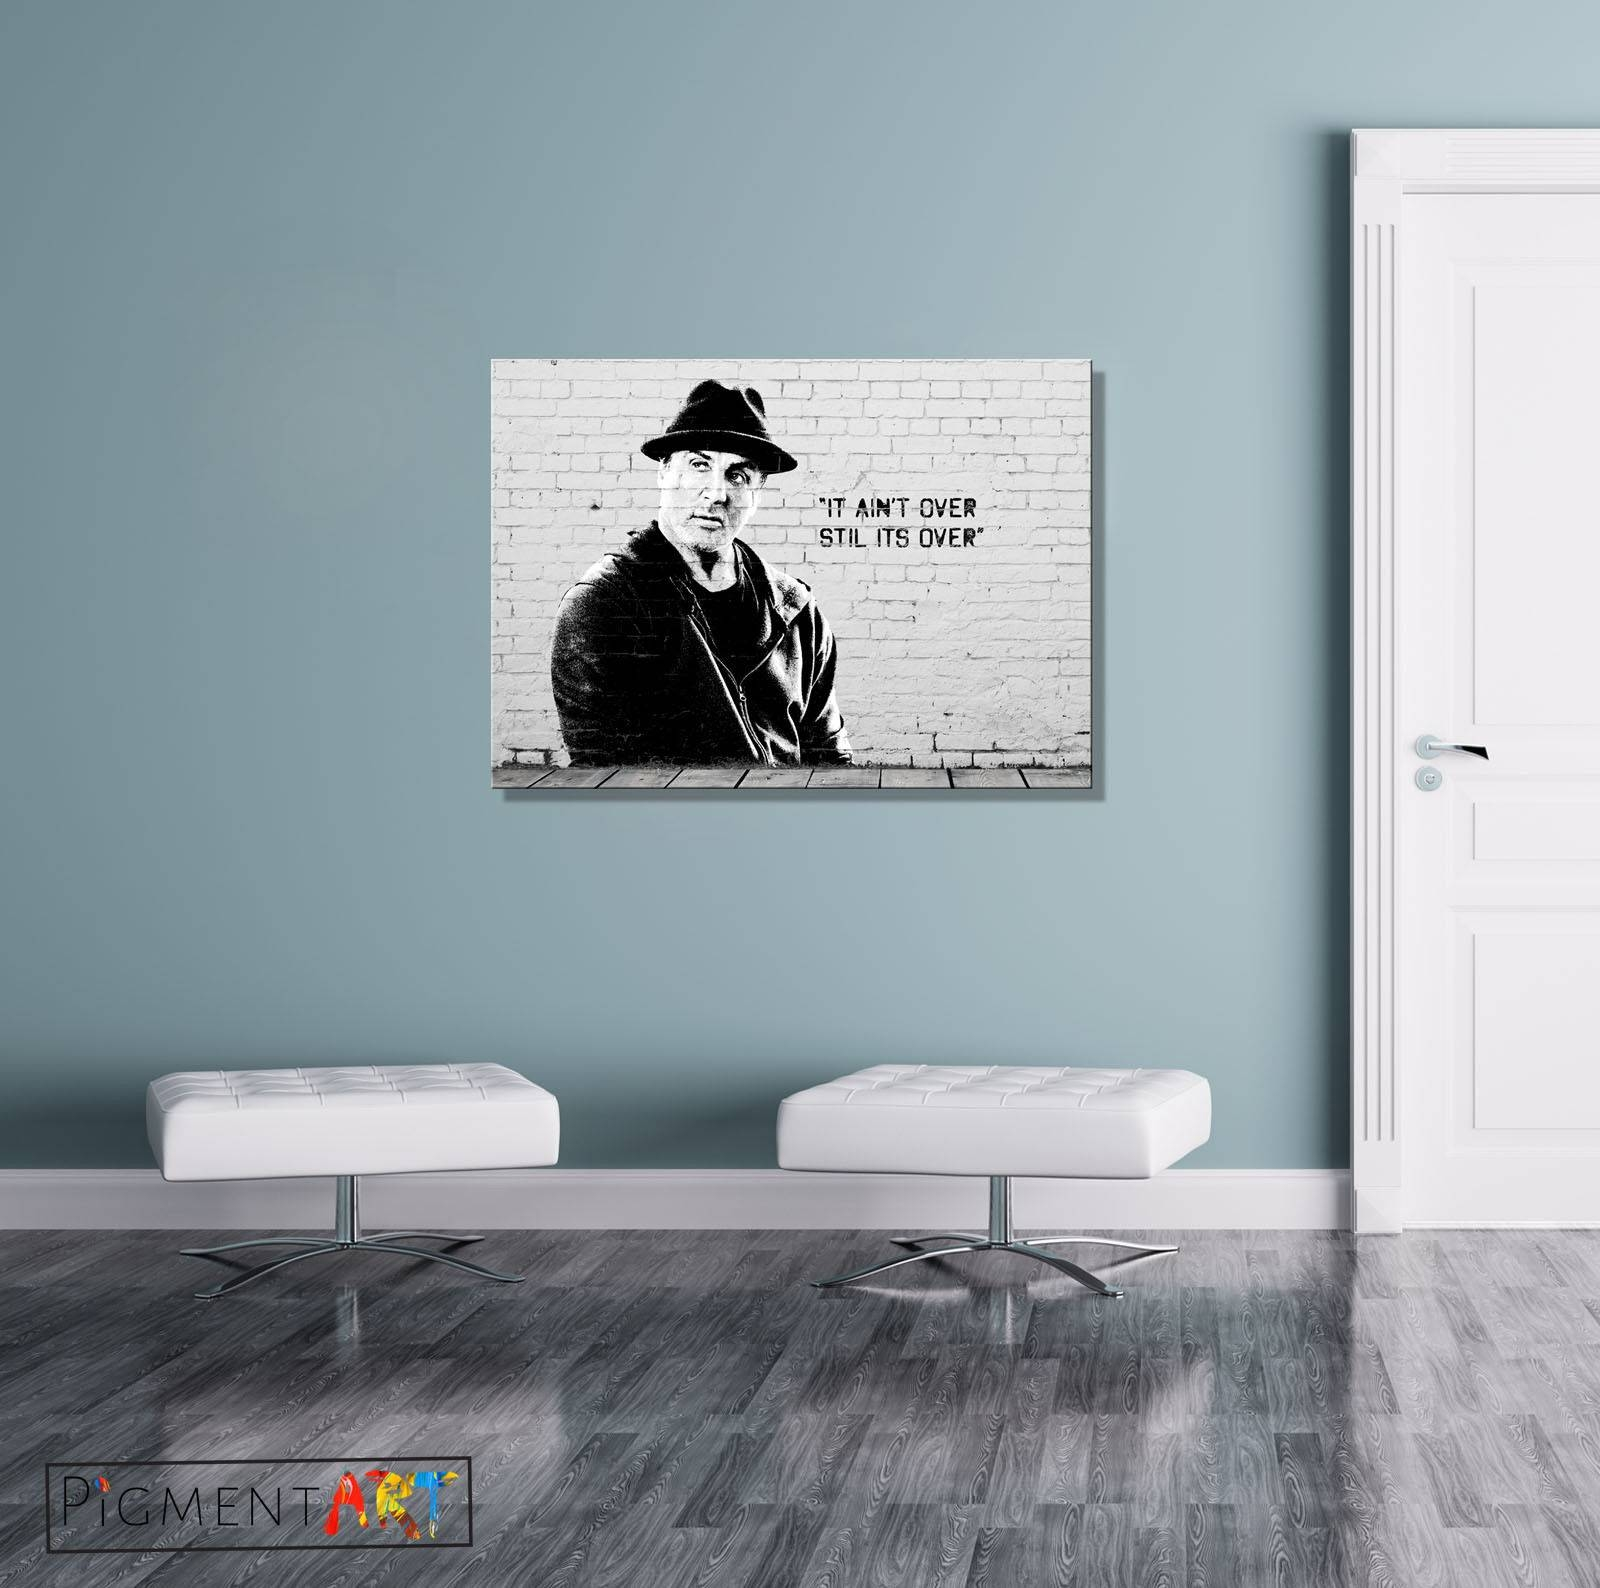 Large Rocky Balboa Quote Graffiti Street Art Canvas Wall Art Within Most Recent Rocky Balboa Wall Art (View 5 of 20)